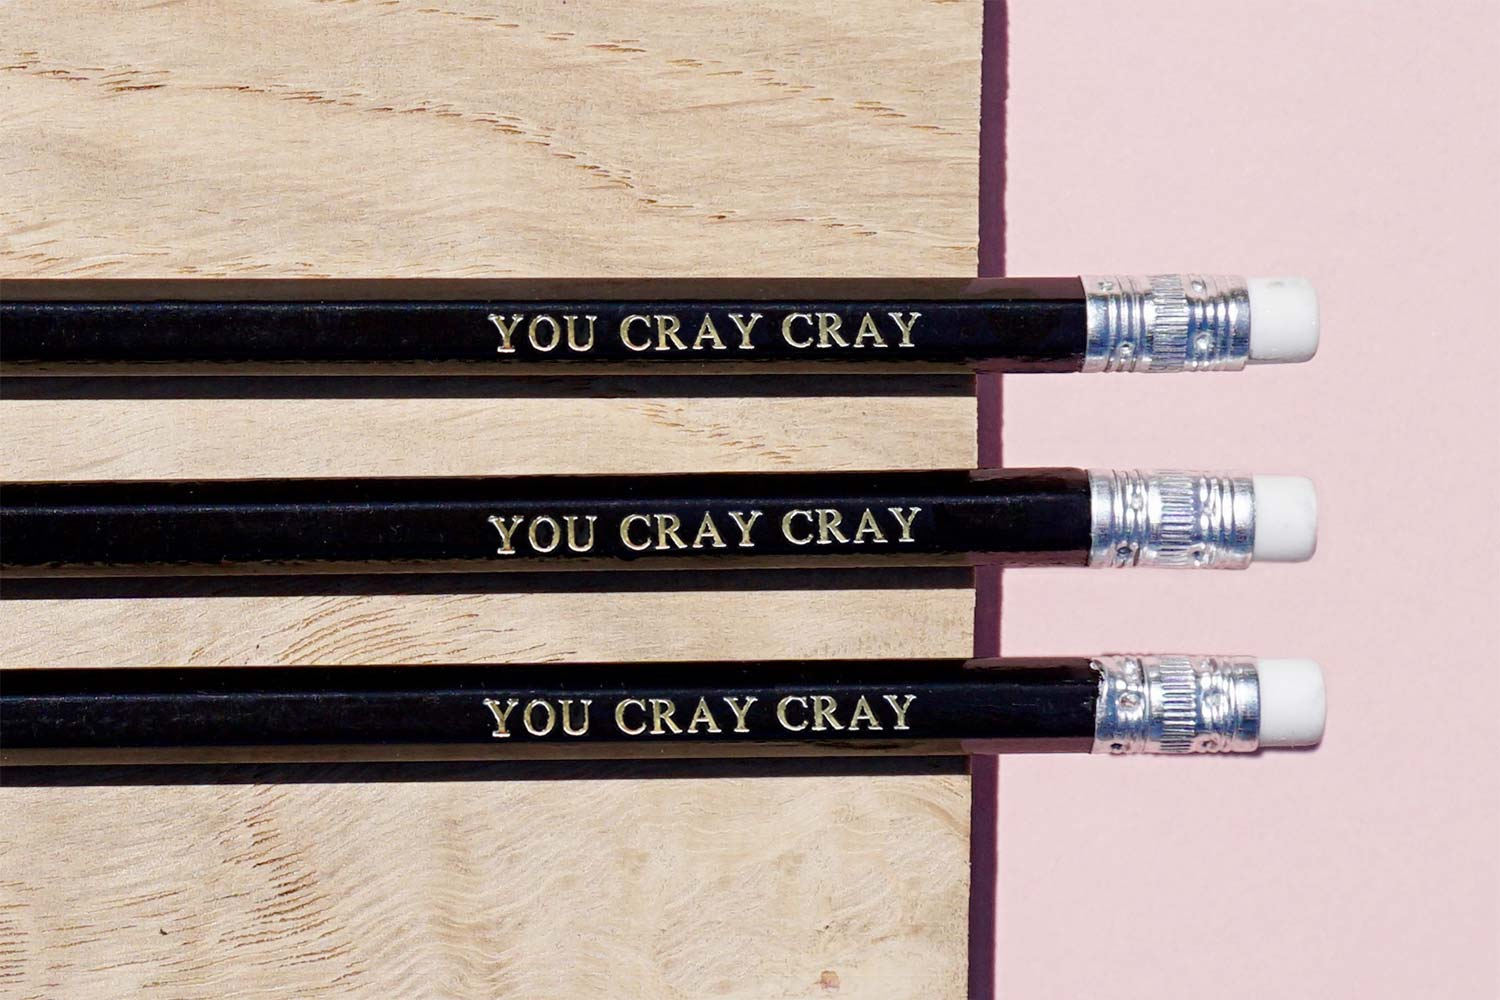 Customized pencils from Bookshell, with the quote 'You cray cray'